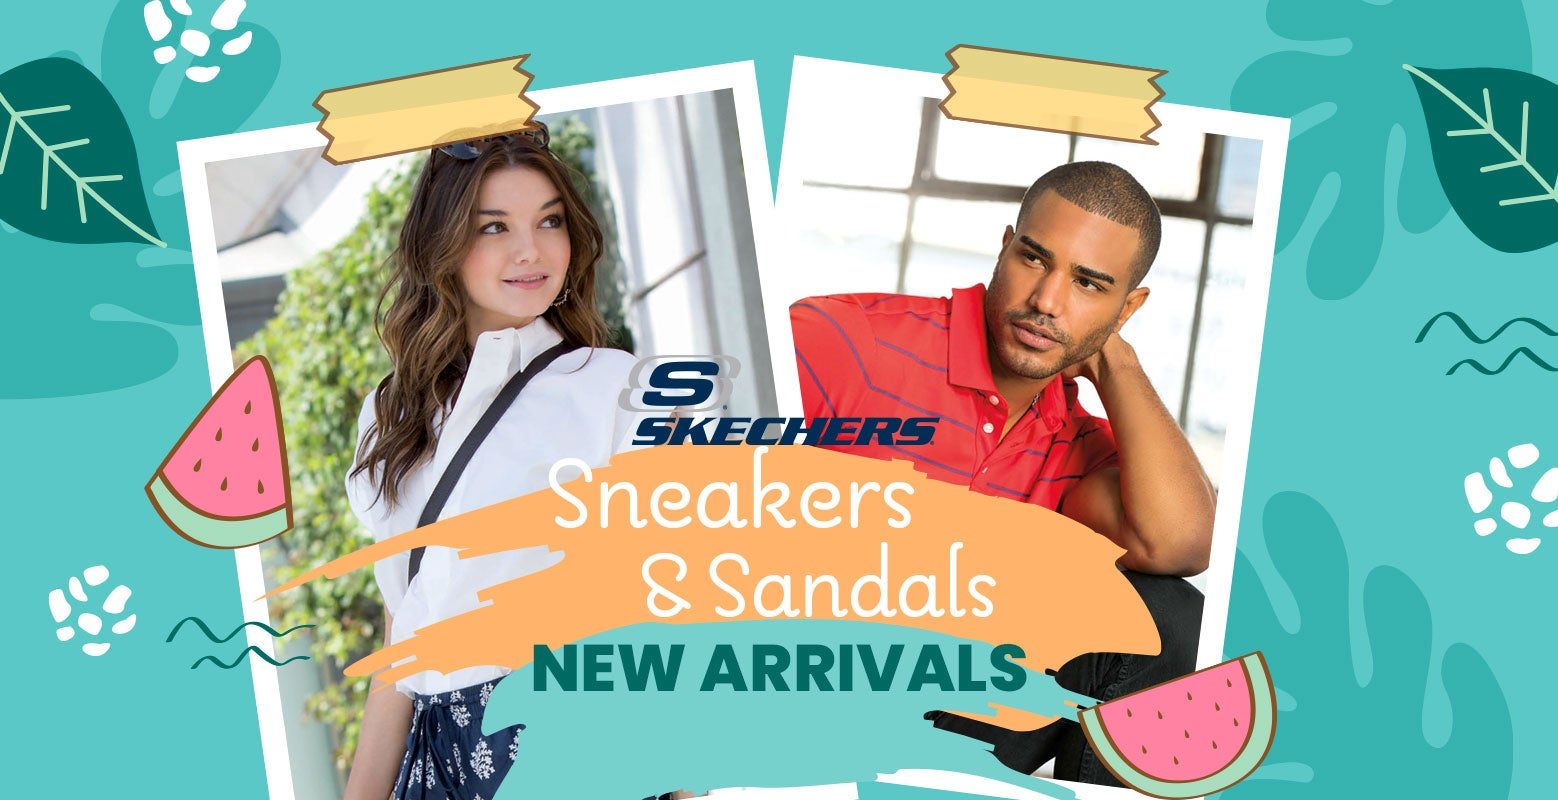 Summer Sandals - Up to 25% OFF! Keen, Clarks, Reef, SoftMoc & More!